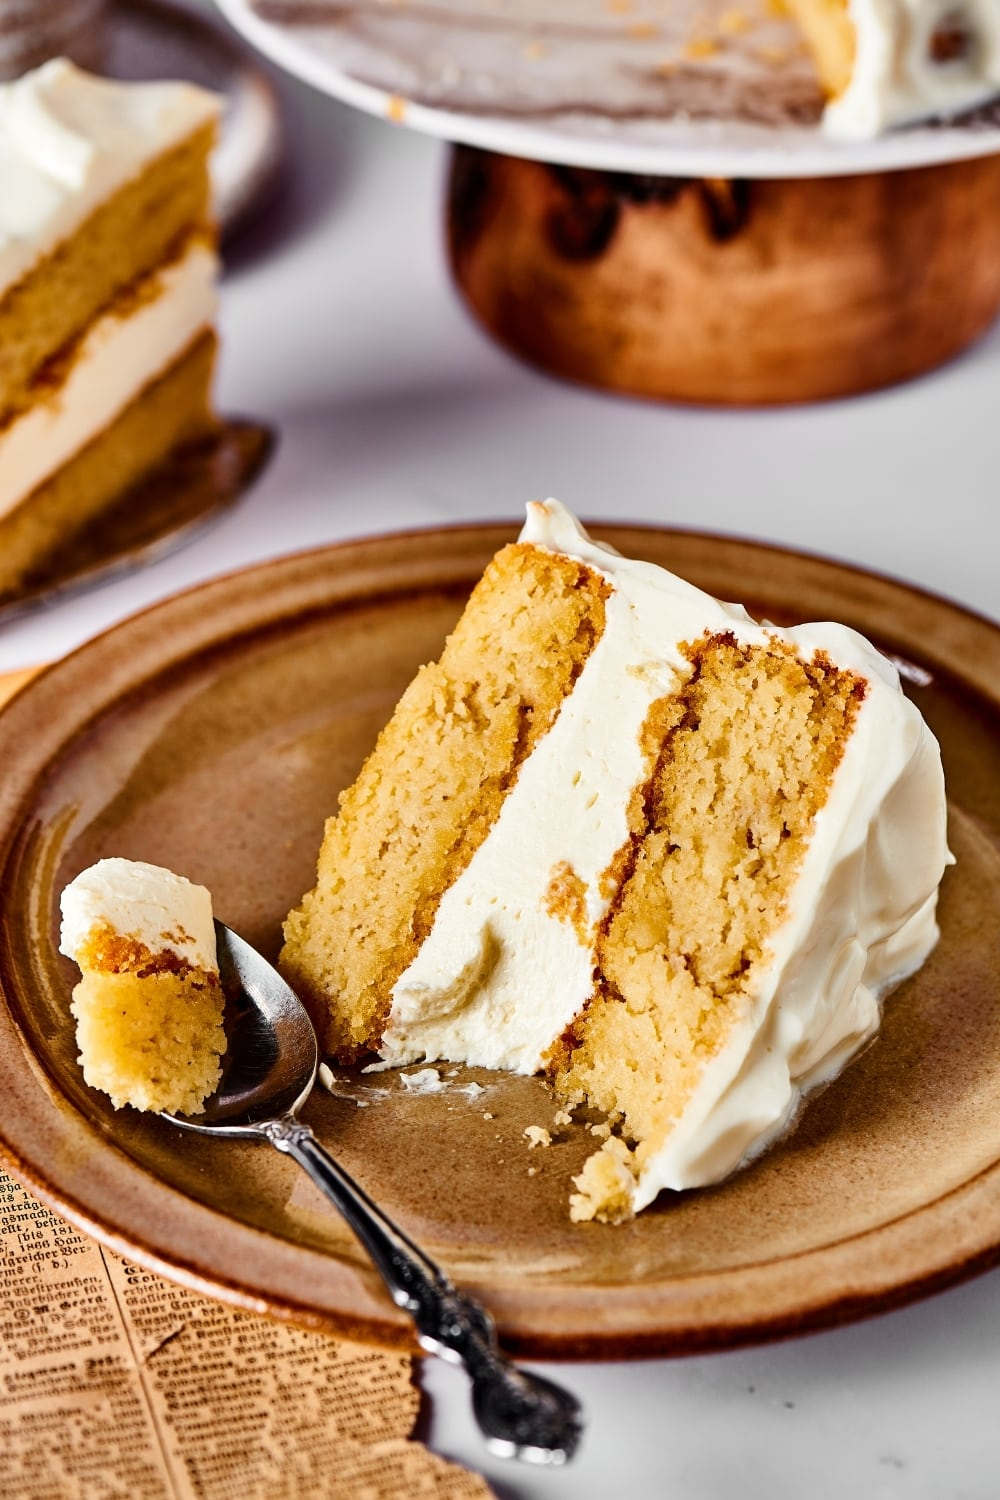 A slice of vanilla cake and a brown plate on a white counter. Hey spoons to the left of the piece of cake with part of the cake on it.